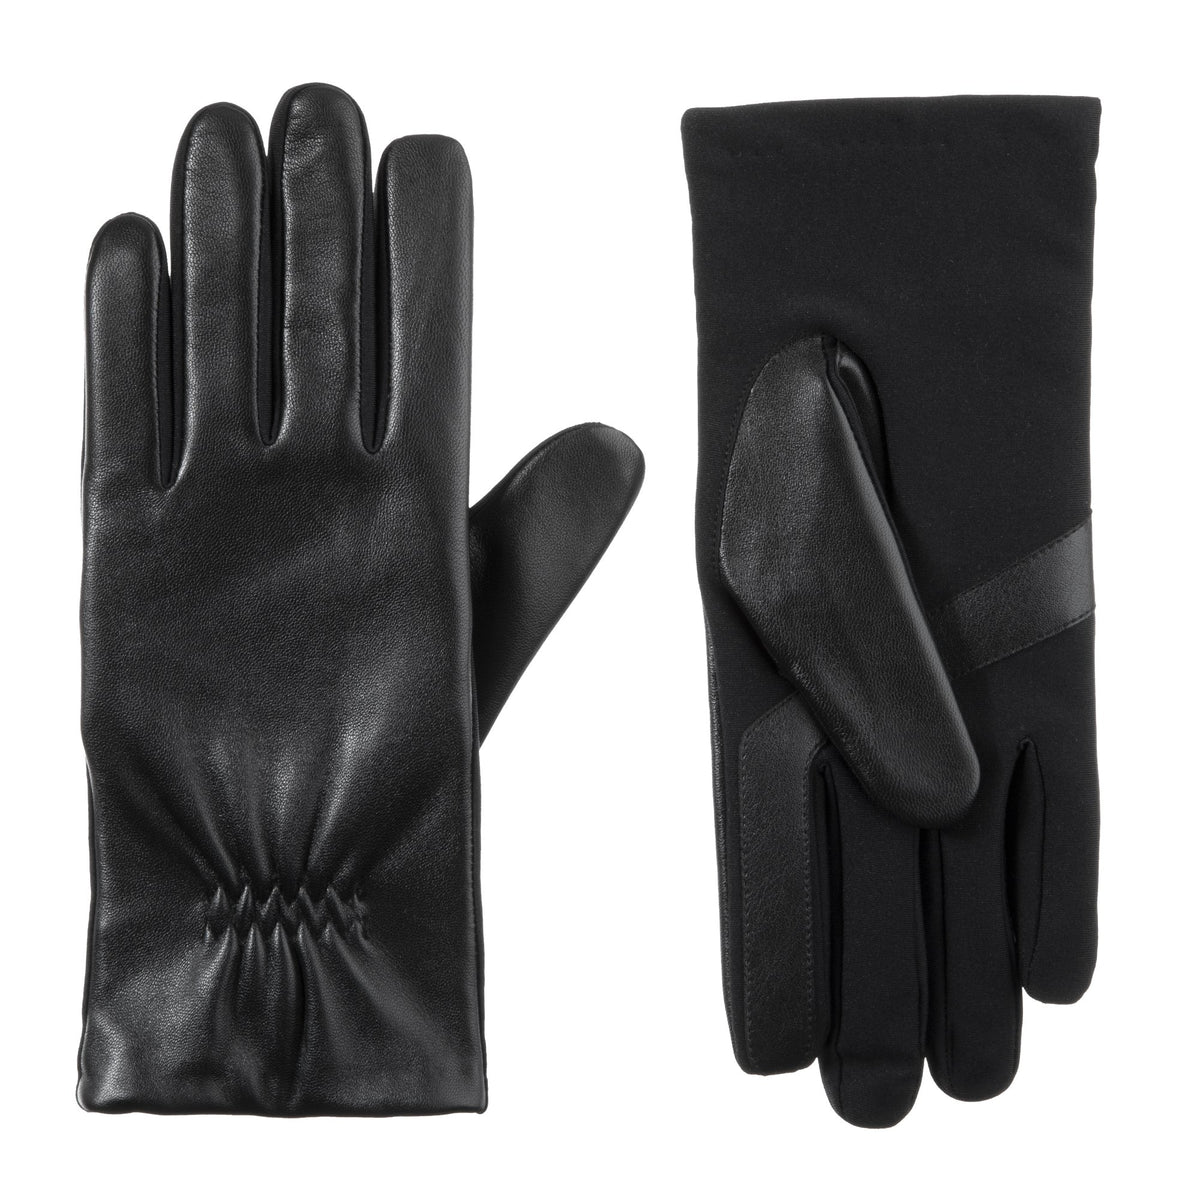 Women's Stretch Leather Touchscreen Gloves Black 1